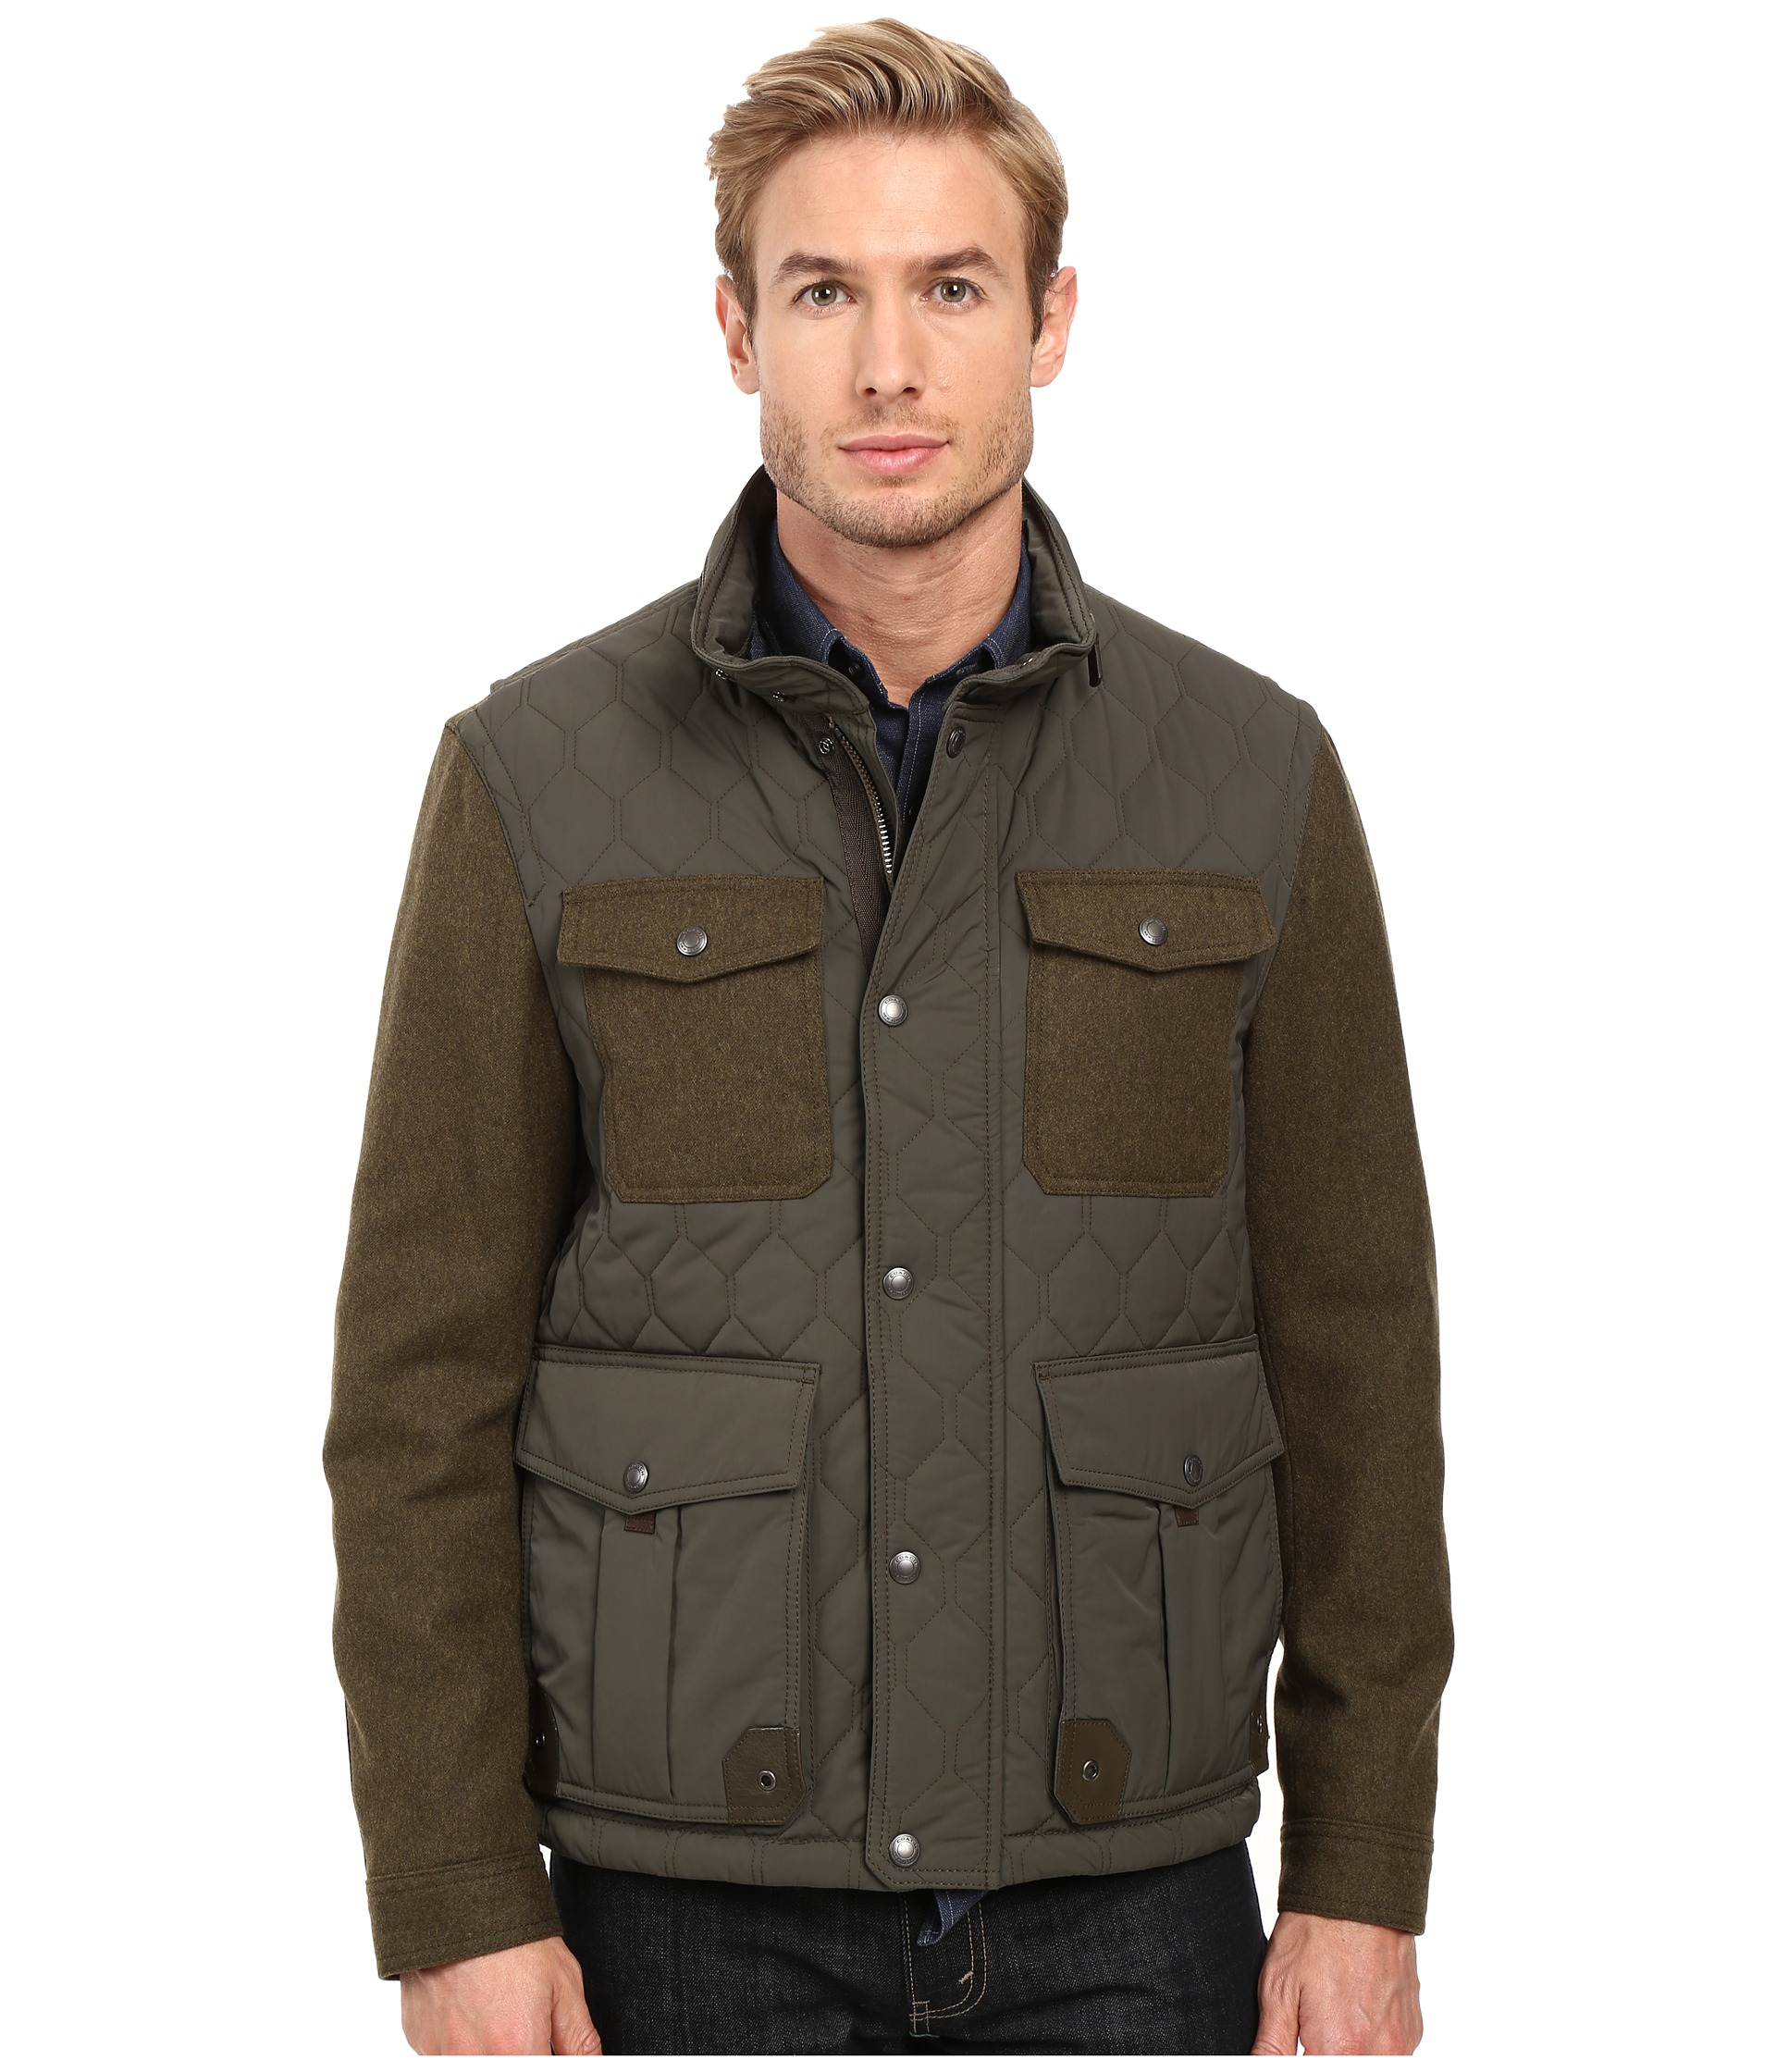 Coats & Outerwear, Men, Field Jacket at 6pm.com